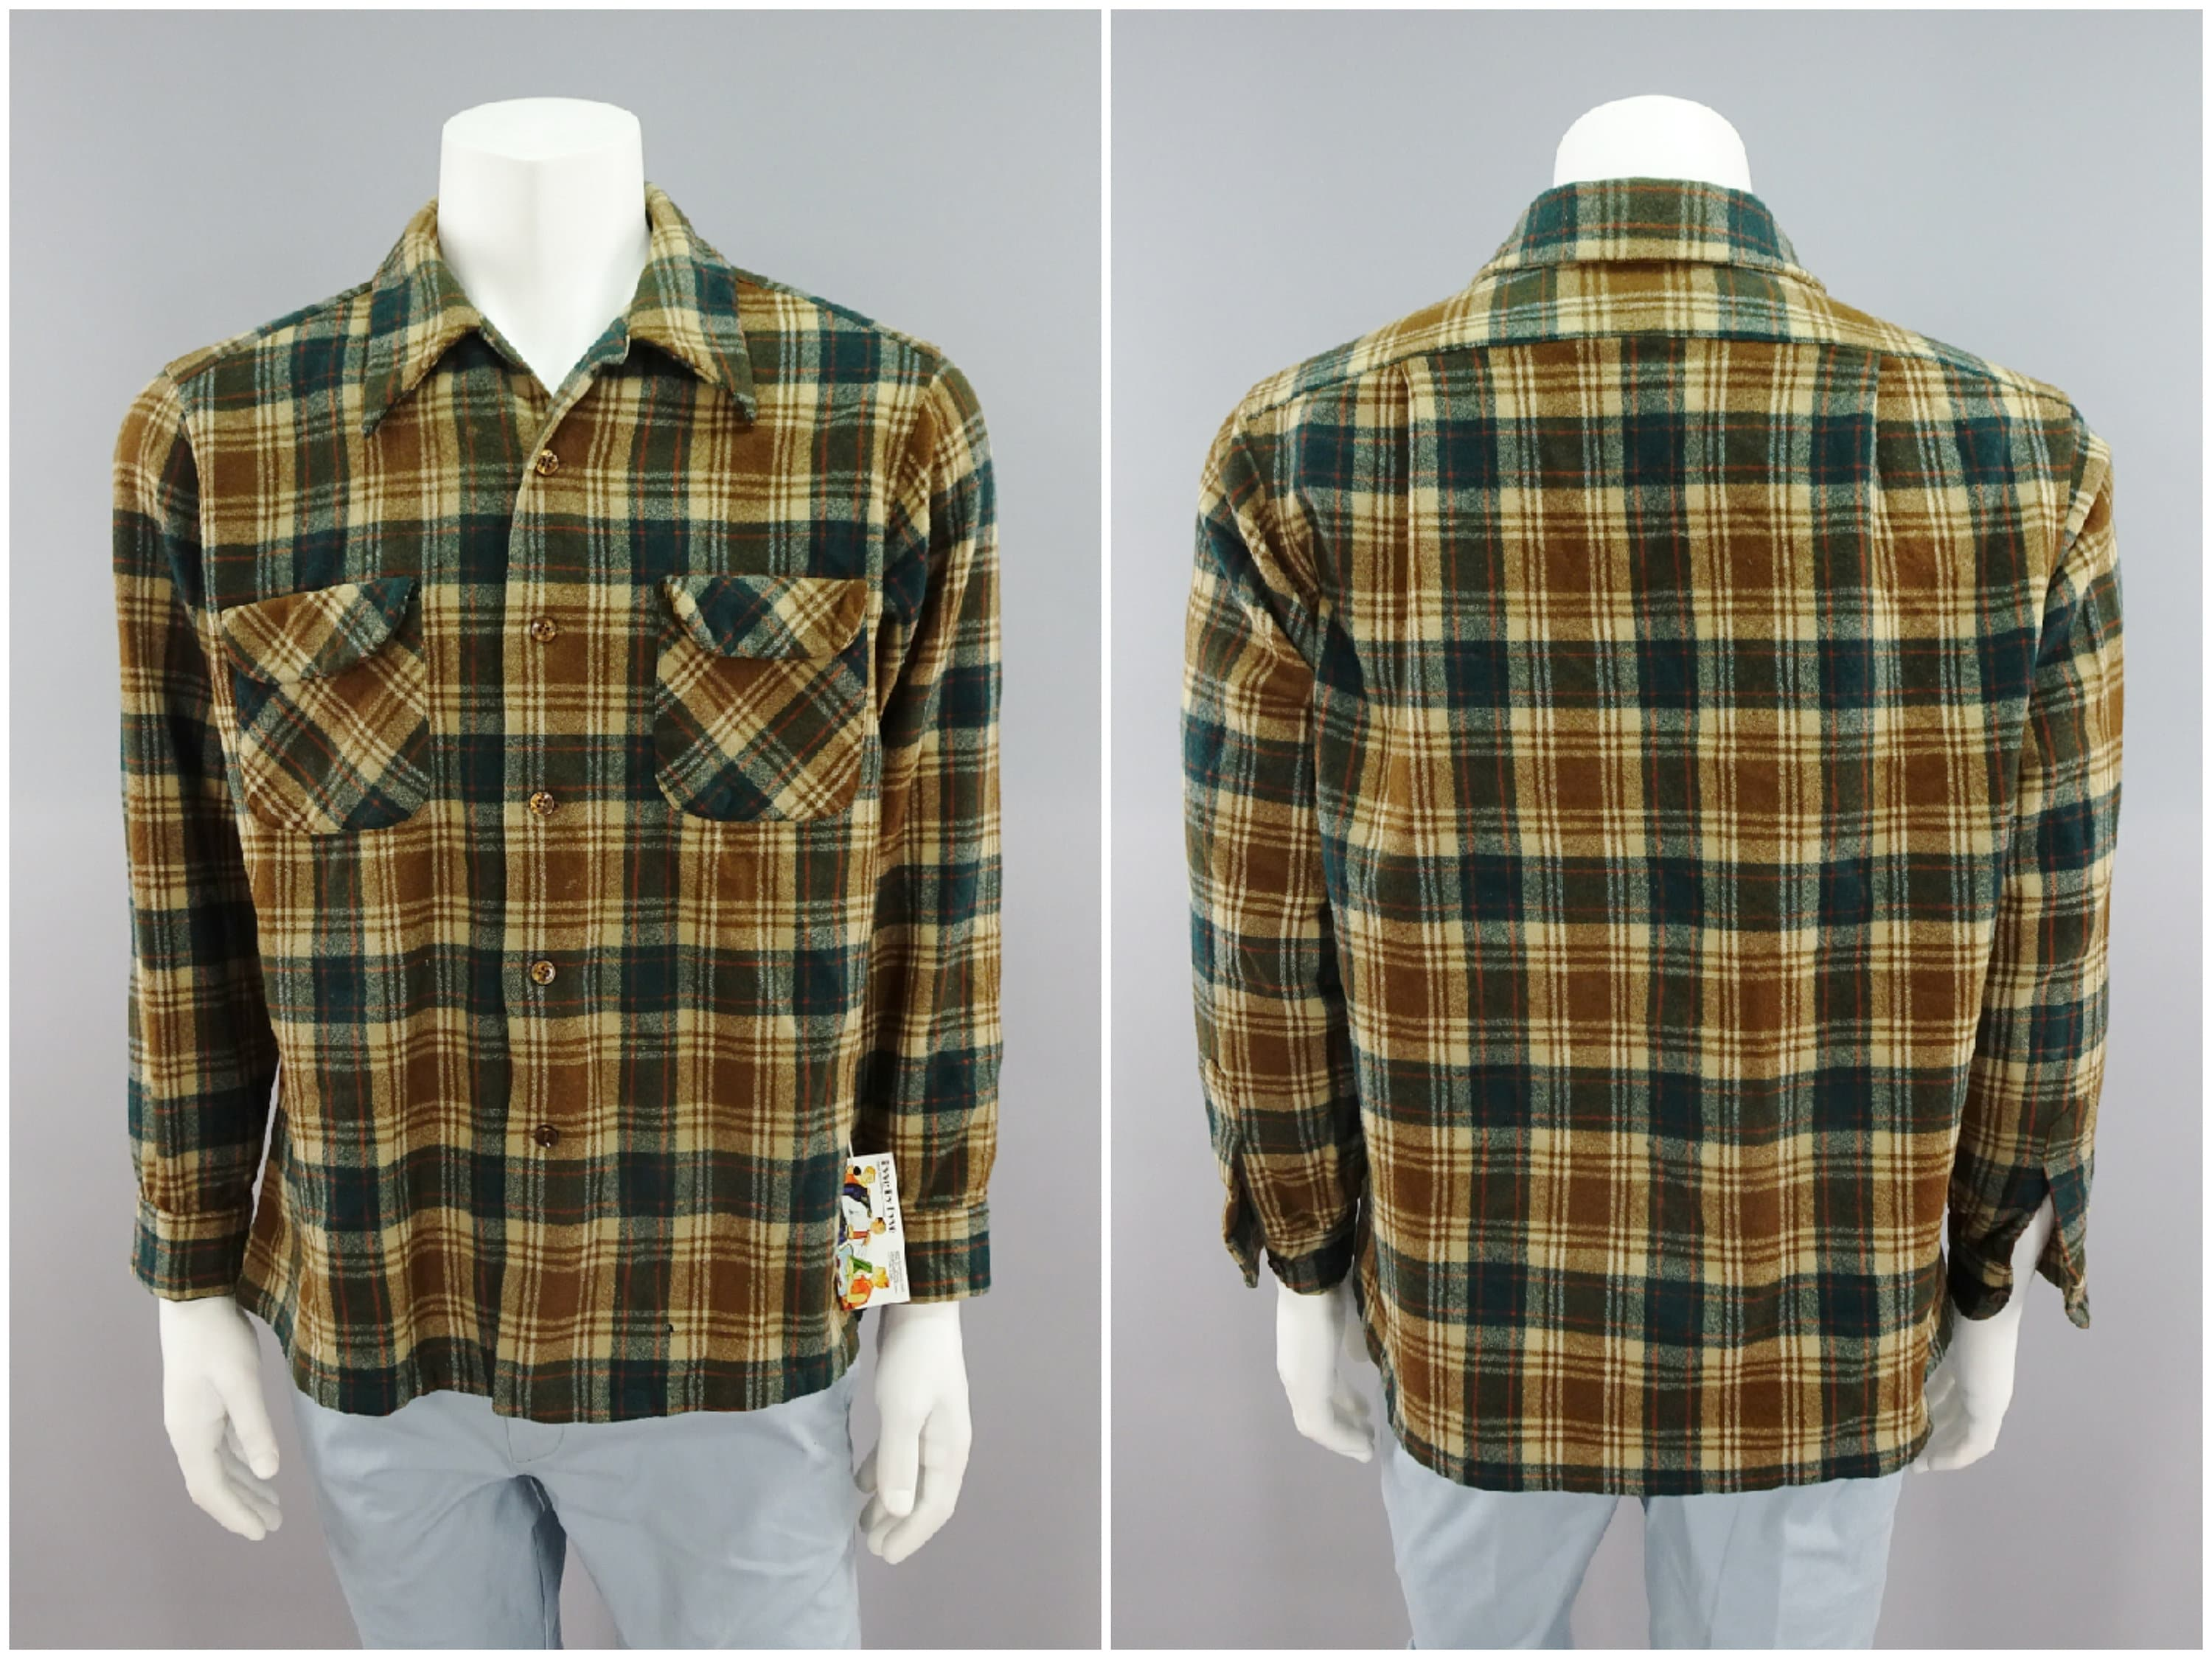 1960s – 70s Men's Ties | Skinny Ties, Slim Ties Mens Traditional Wool Plaid Flannel By Pendleton 1960S Vintage GreenBrown Farmer Country Cowboy Shirt Size Xl 46 With Rayon Neck Liner $0.00 AT vintagedancer.com